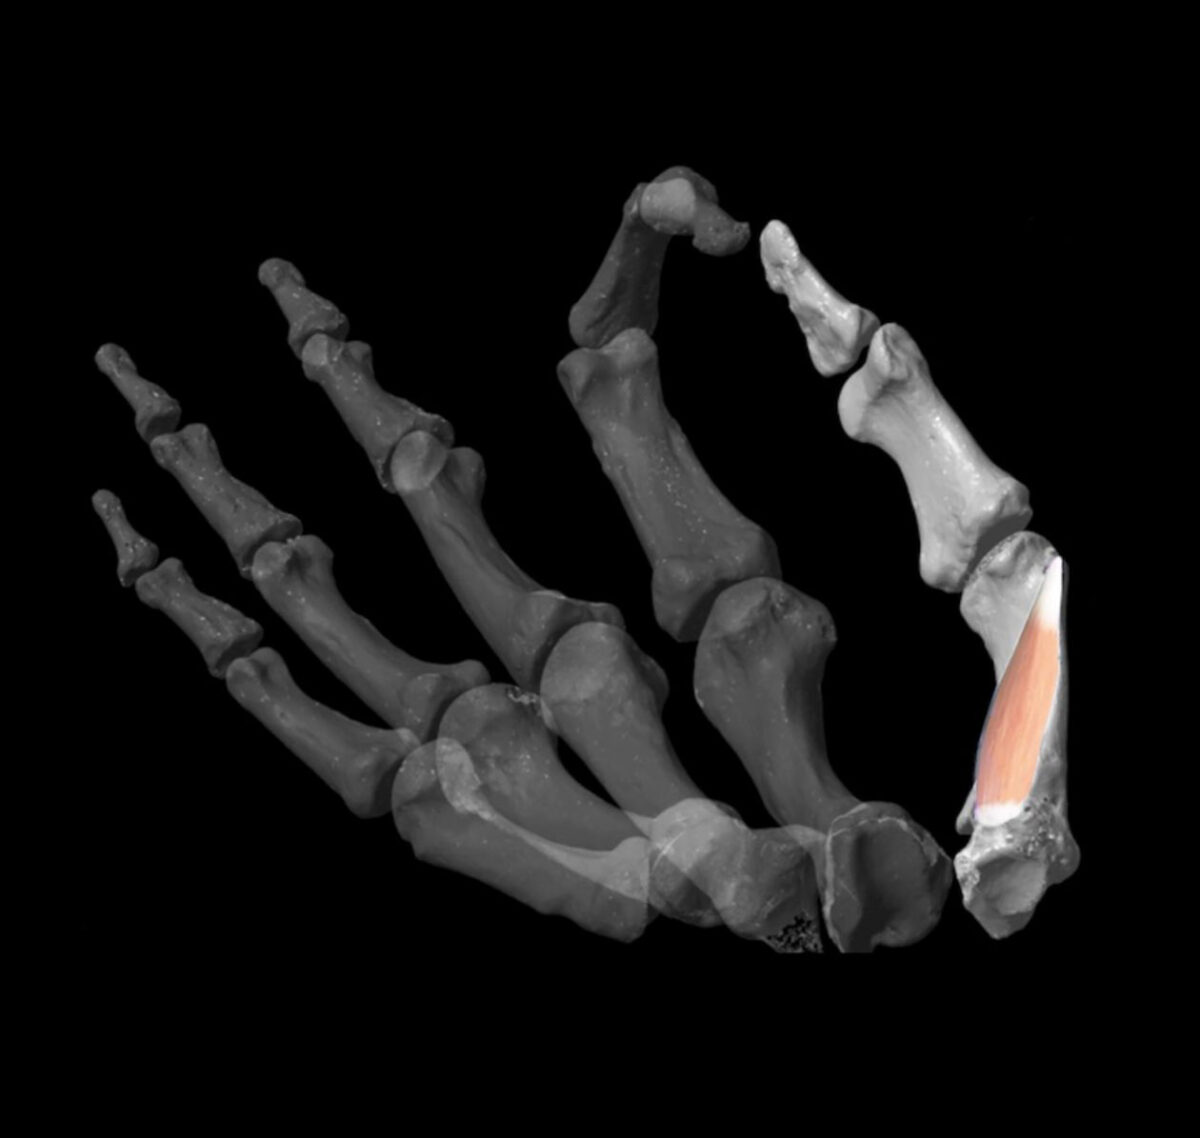 Aspect of the virtual model developed by the researchers to assess thumb dexterity in the fossil record. Copyright: Image: Katerina Harvati, Alexandros Karakostis, Daniel Häufle